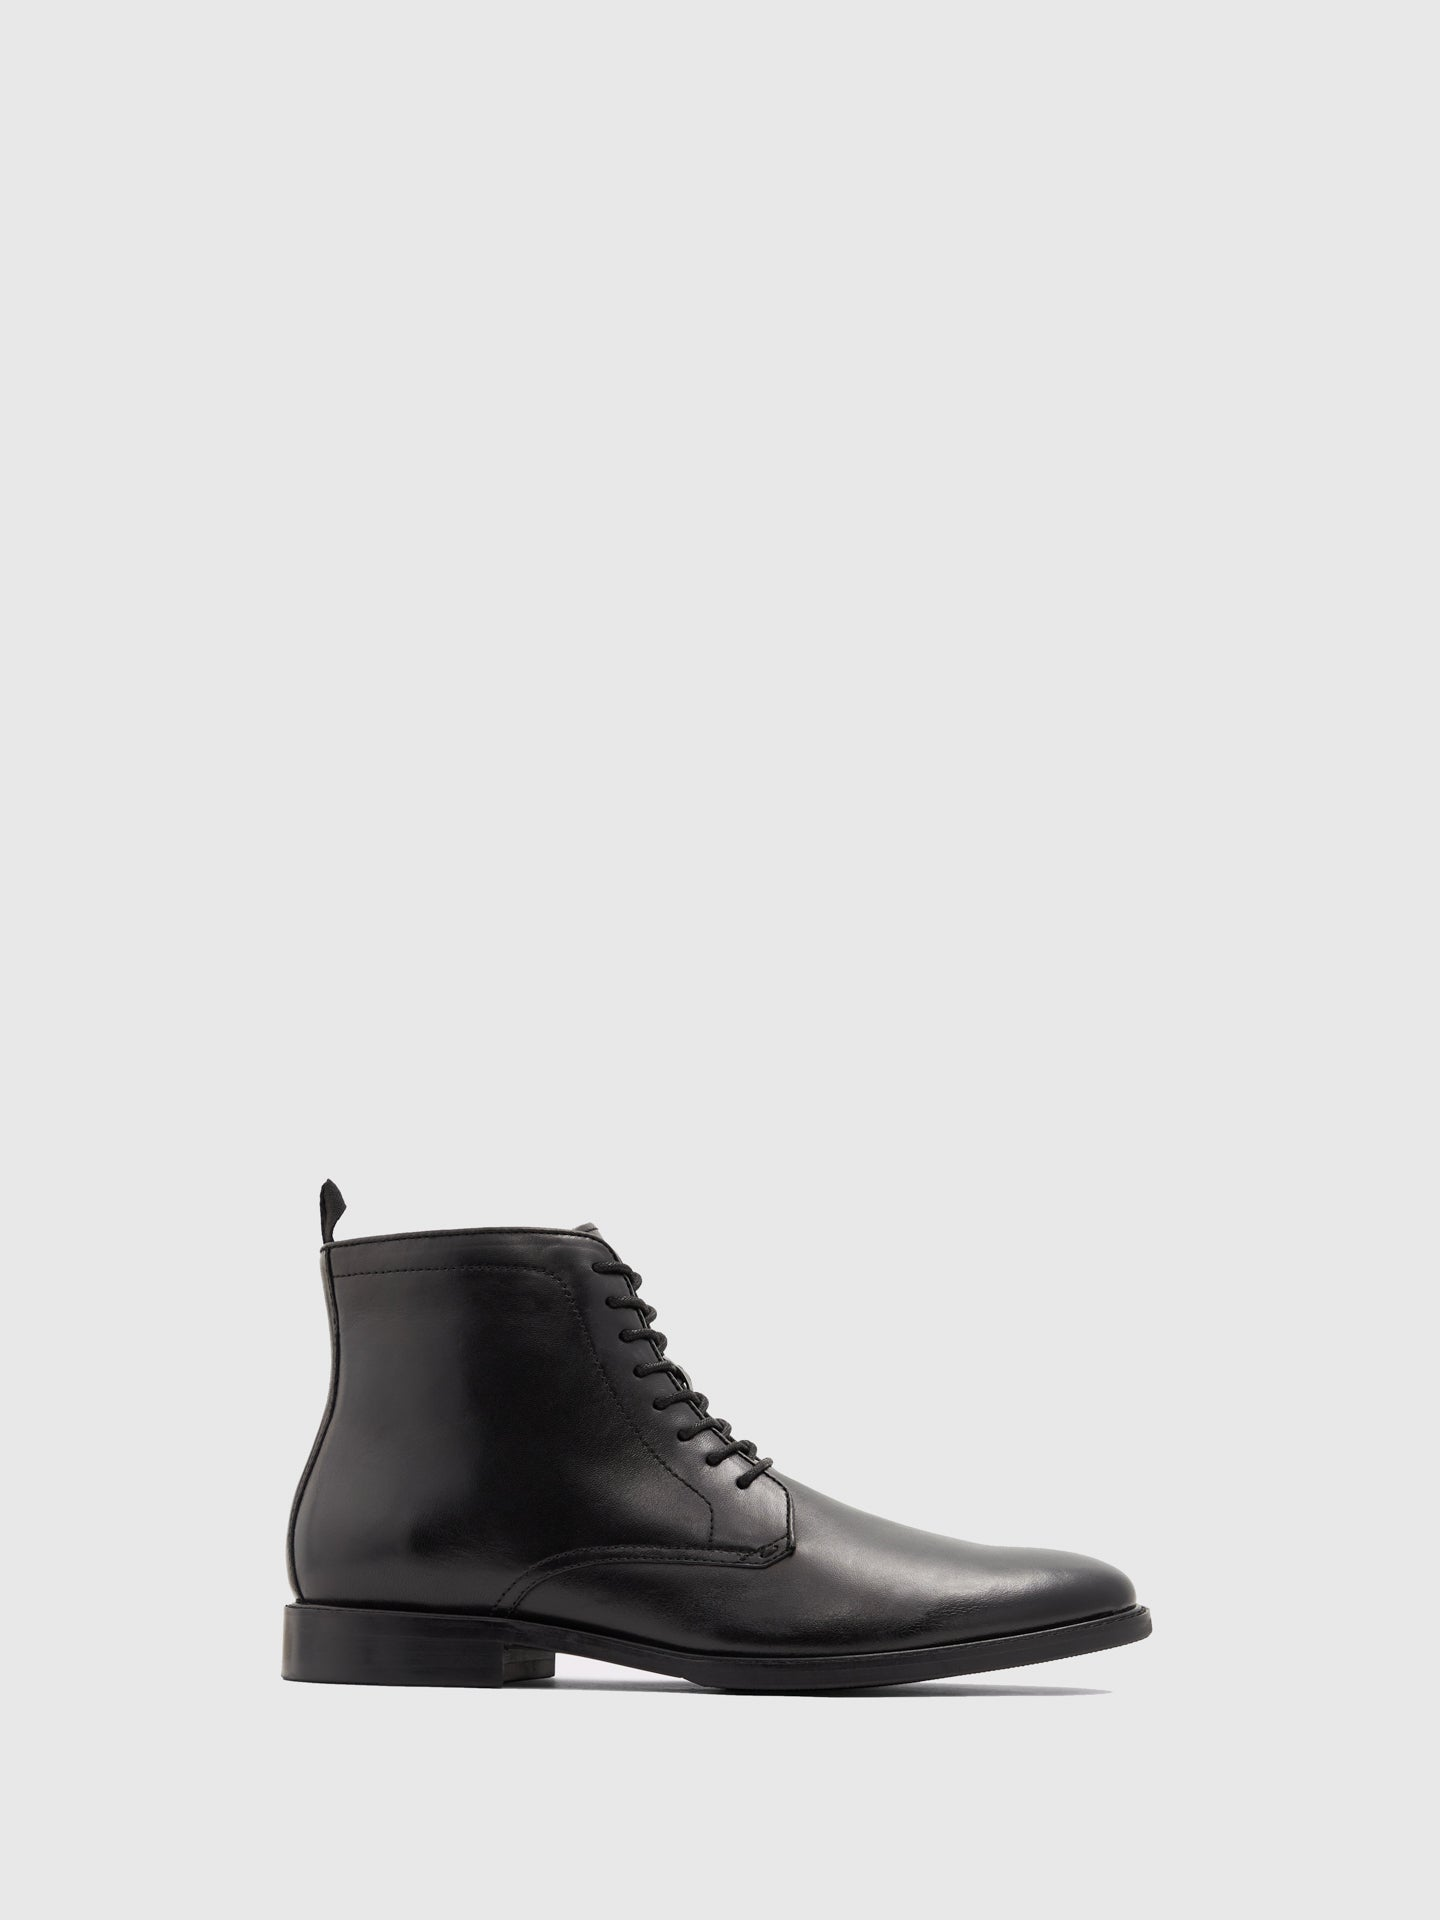 Aldo Black Leather Lace-up Ankle Boots